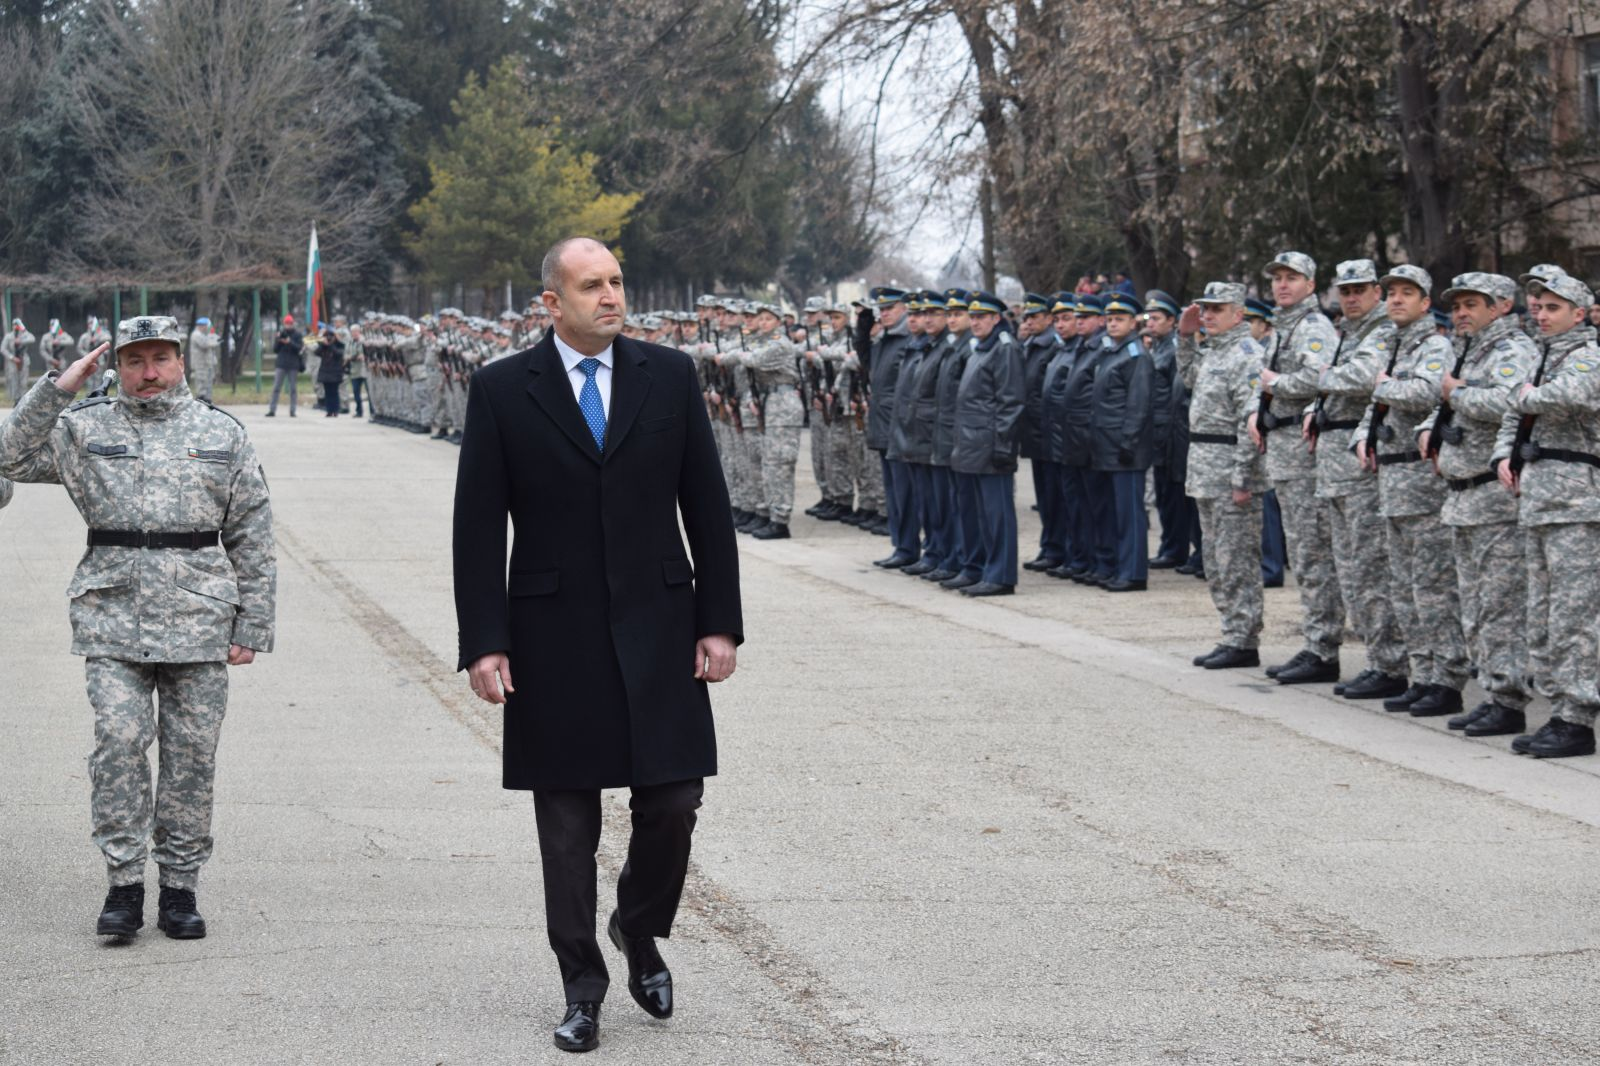 GALLERY - AIR FORCE SCHOOL IN DOLNA MITROPOLIA REOPENS!